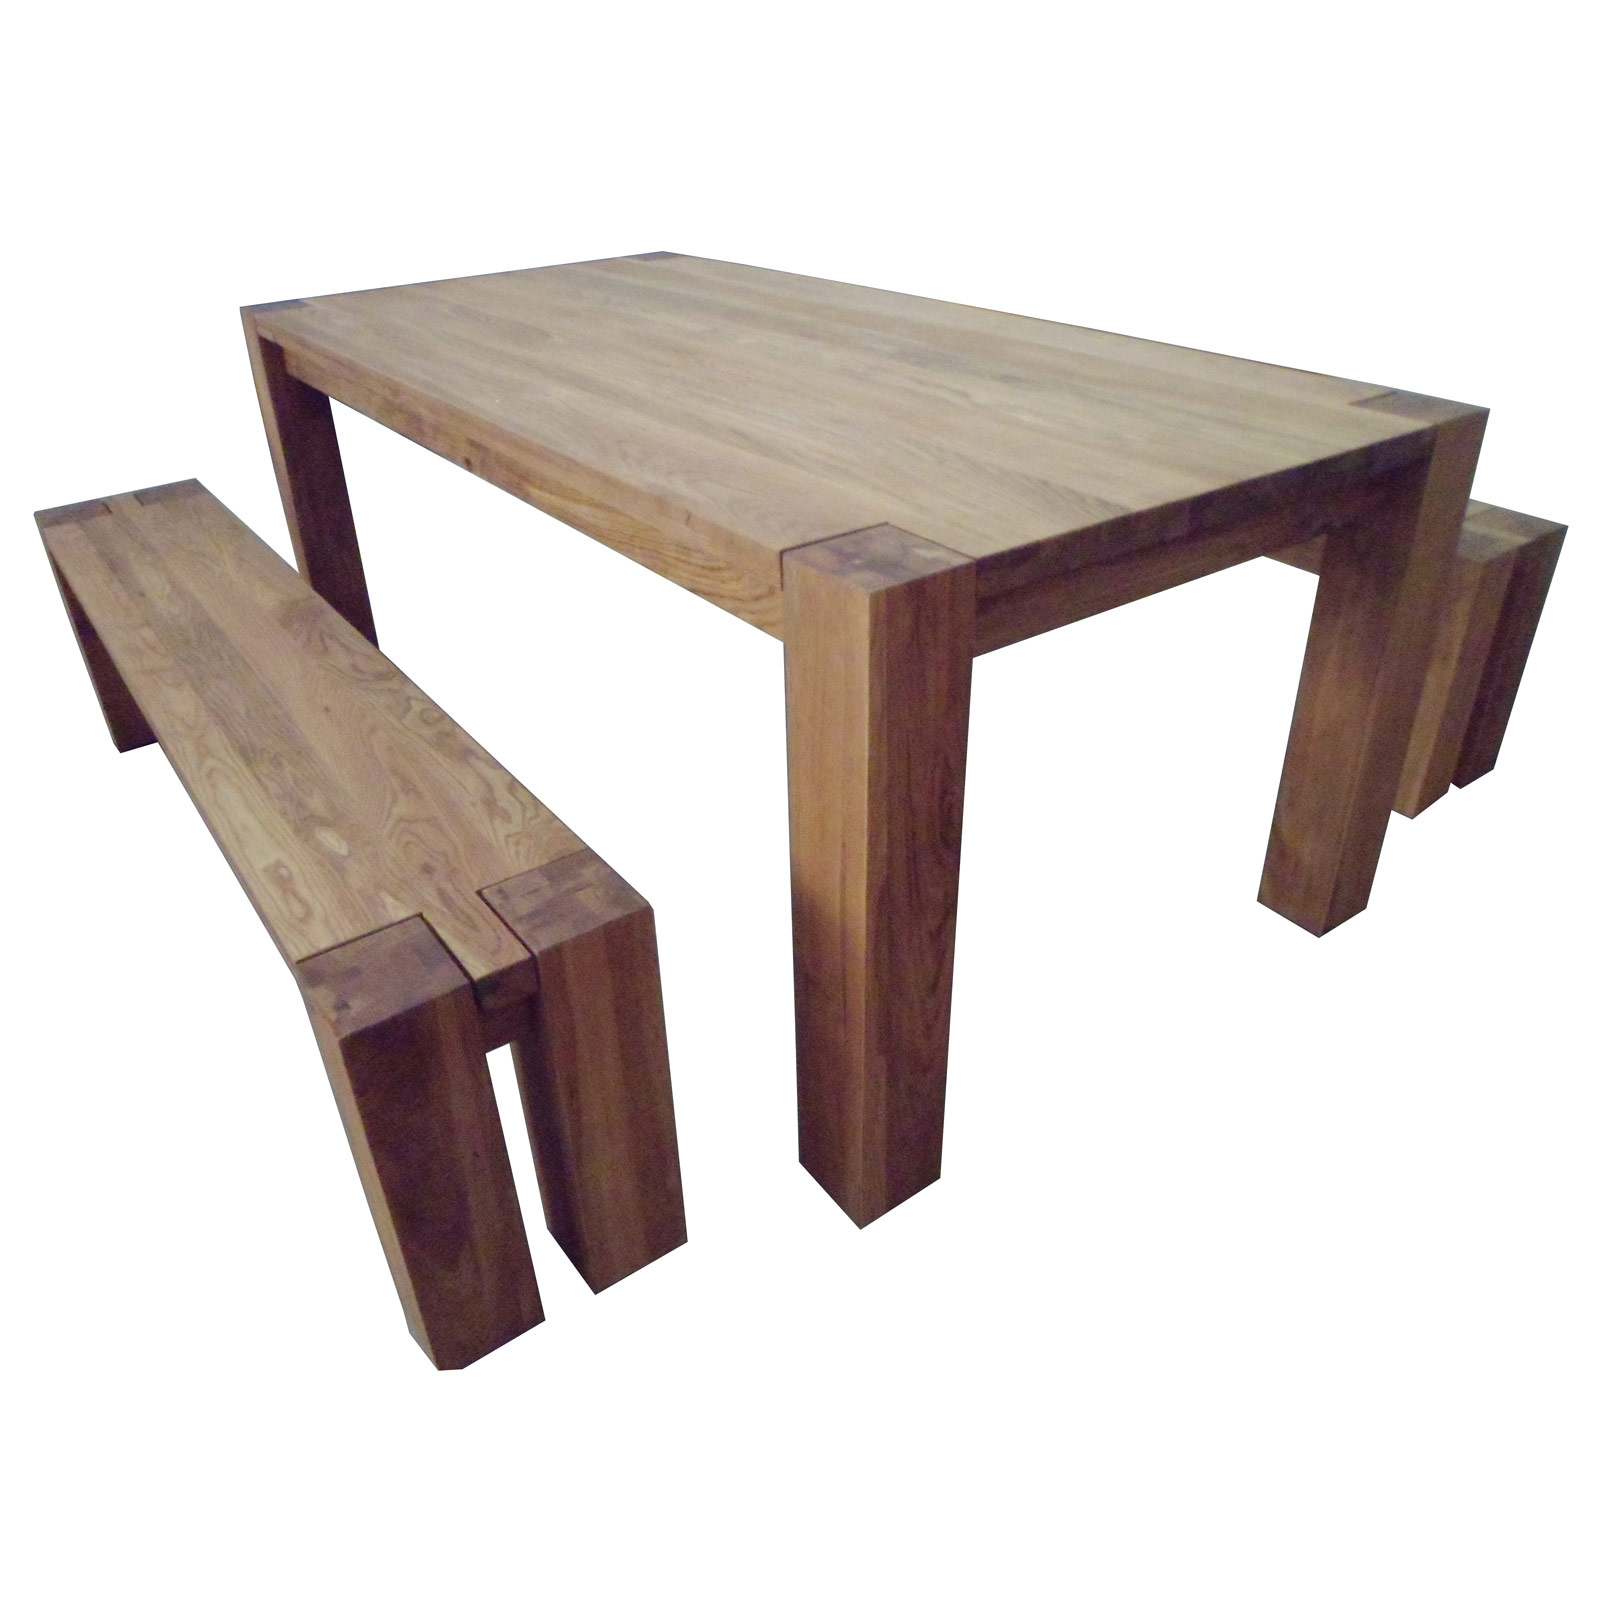 Braemar rectangular oak wood dining kitchen table furniture set with 2 benches ebay - Rectangle kitchen table sets ...